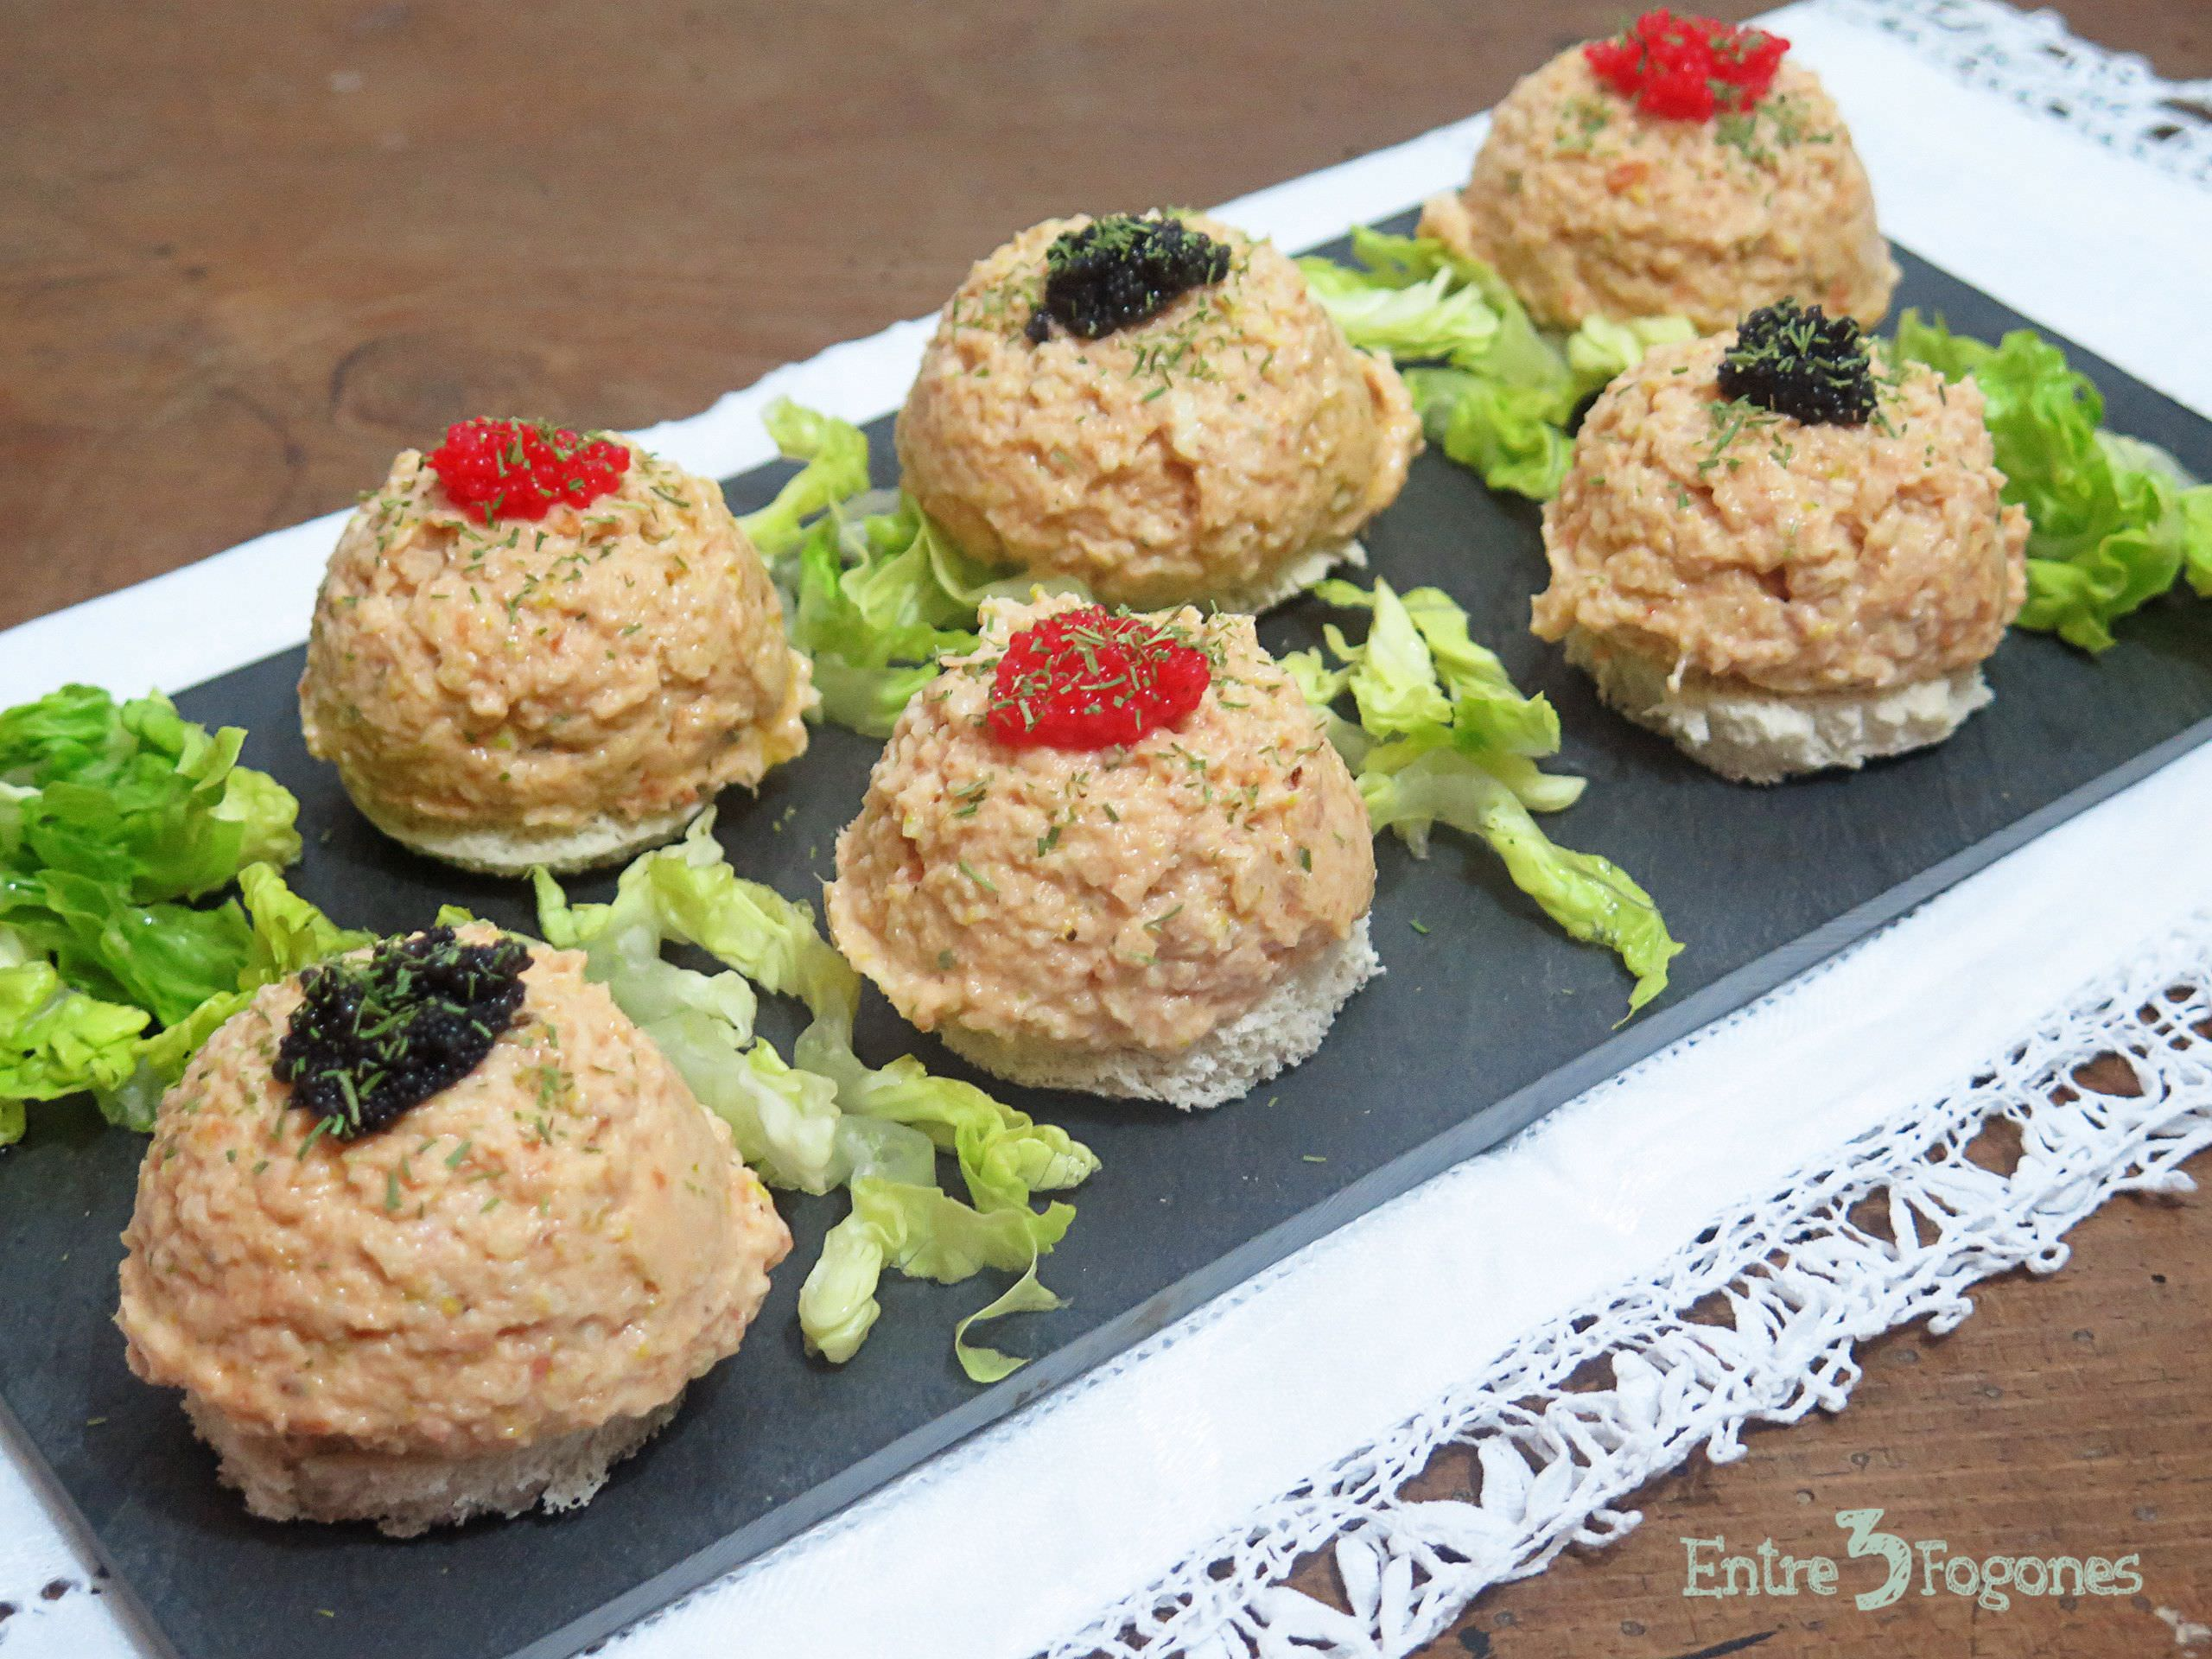 Photo of Canapés de Salmón con Tronco de Brócoli